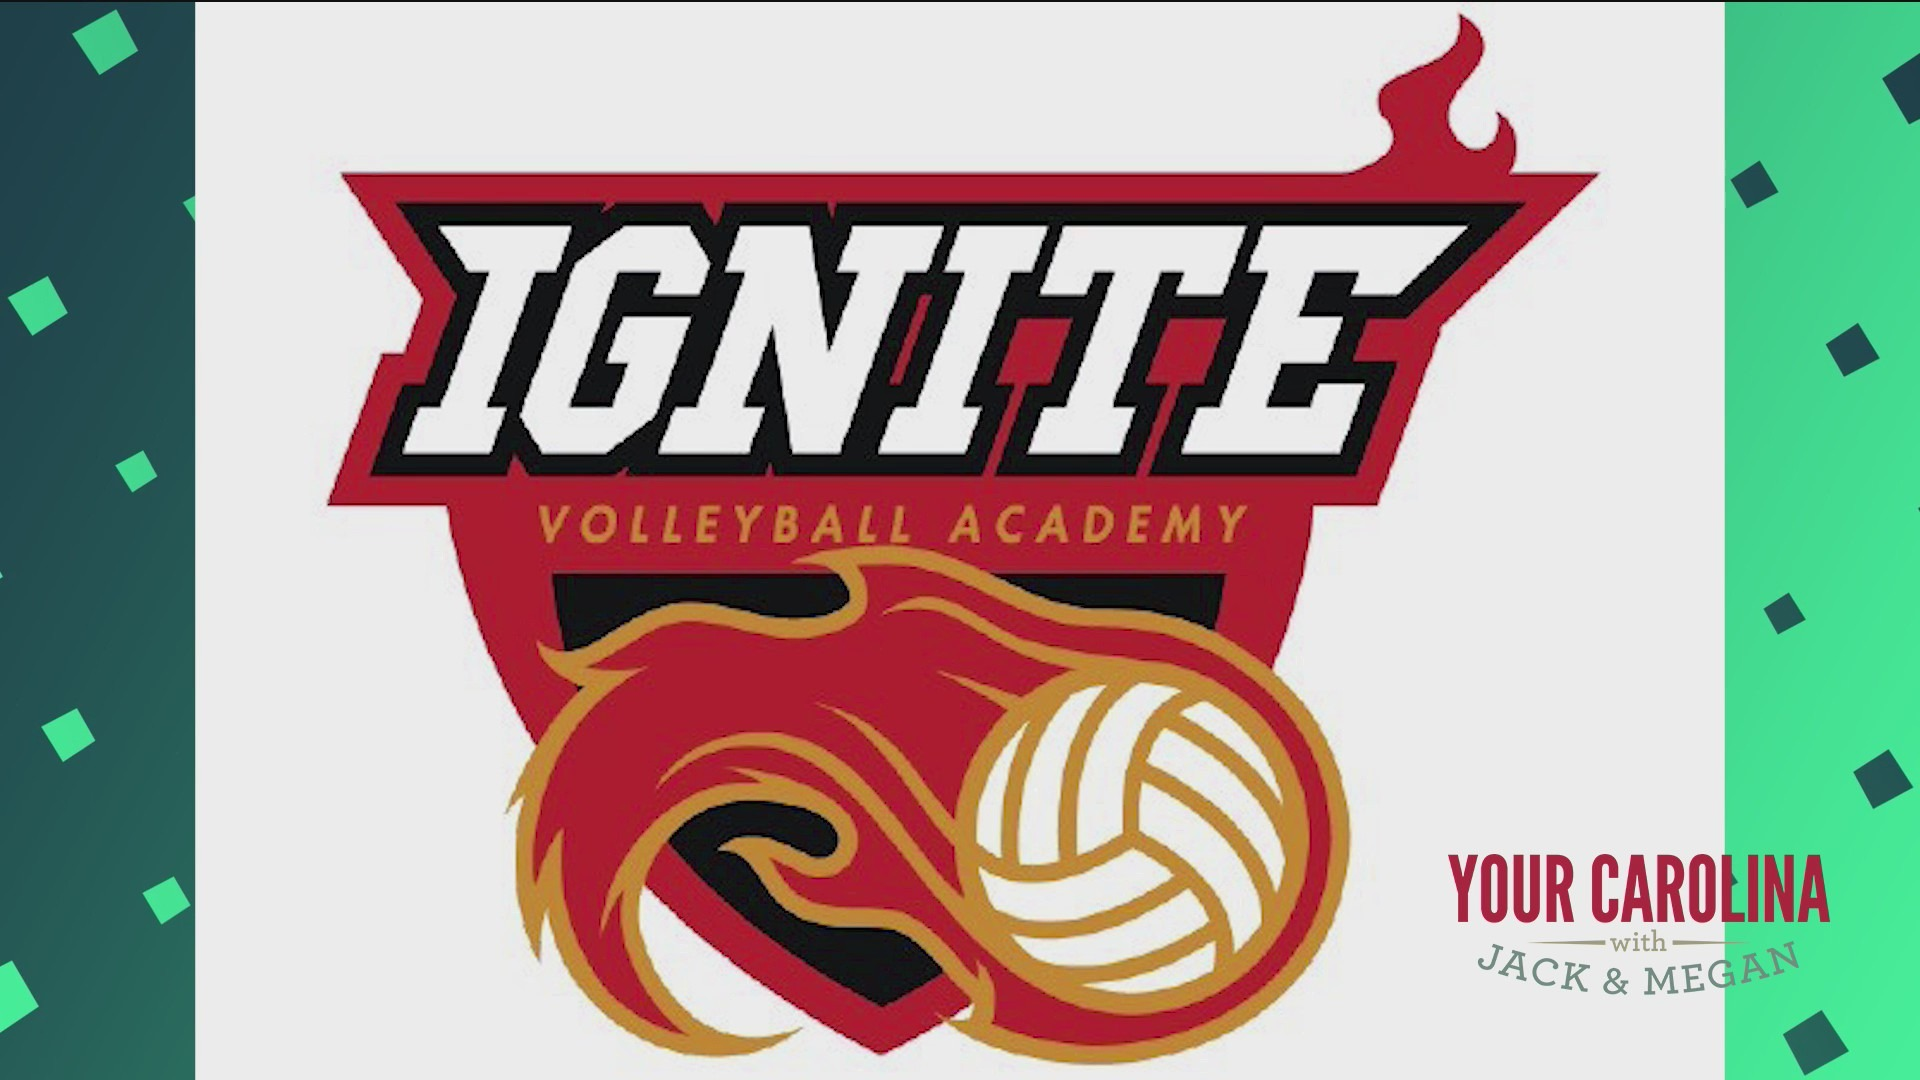 Ignite Volleyball Academy